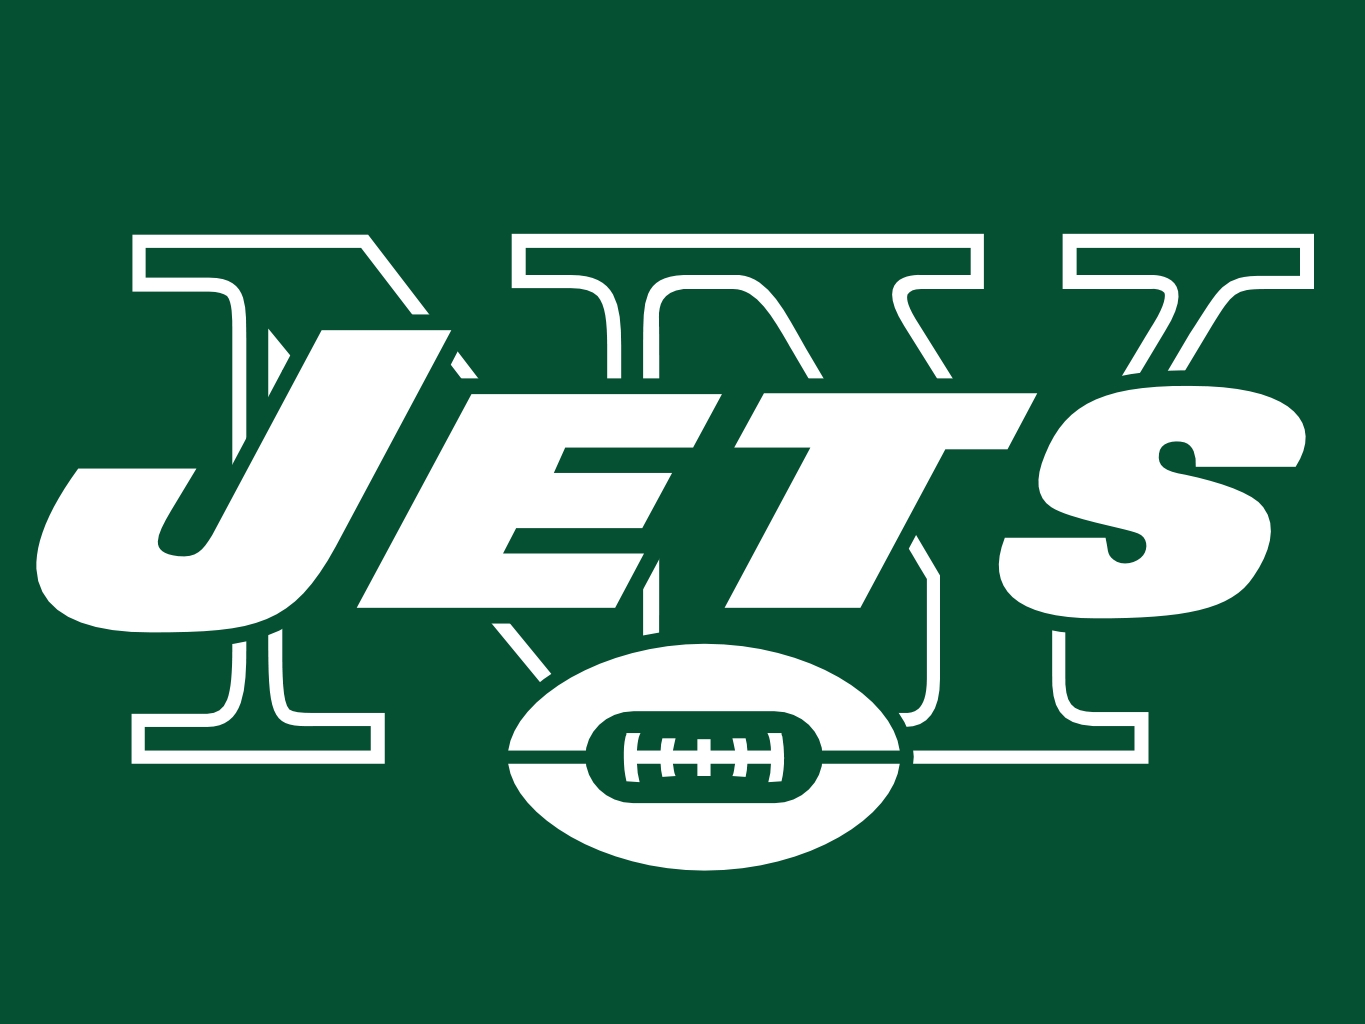 Free Download Nfl Wallpapers New York Jets 1365x1024 For Your